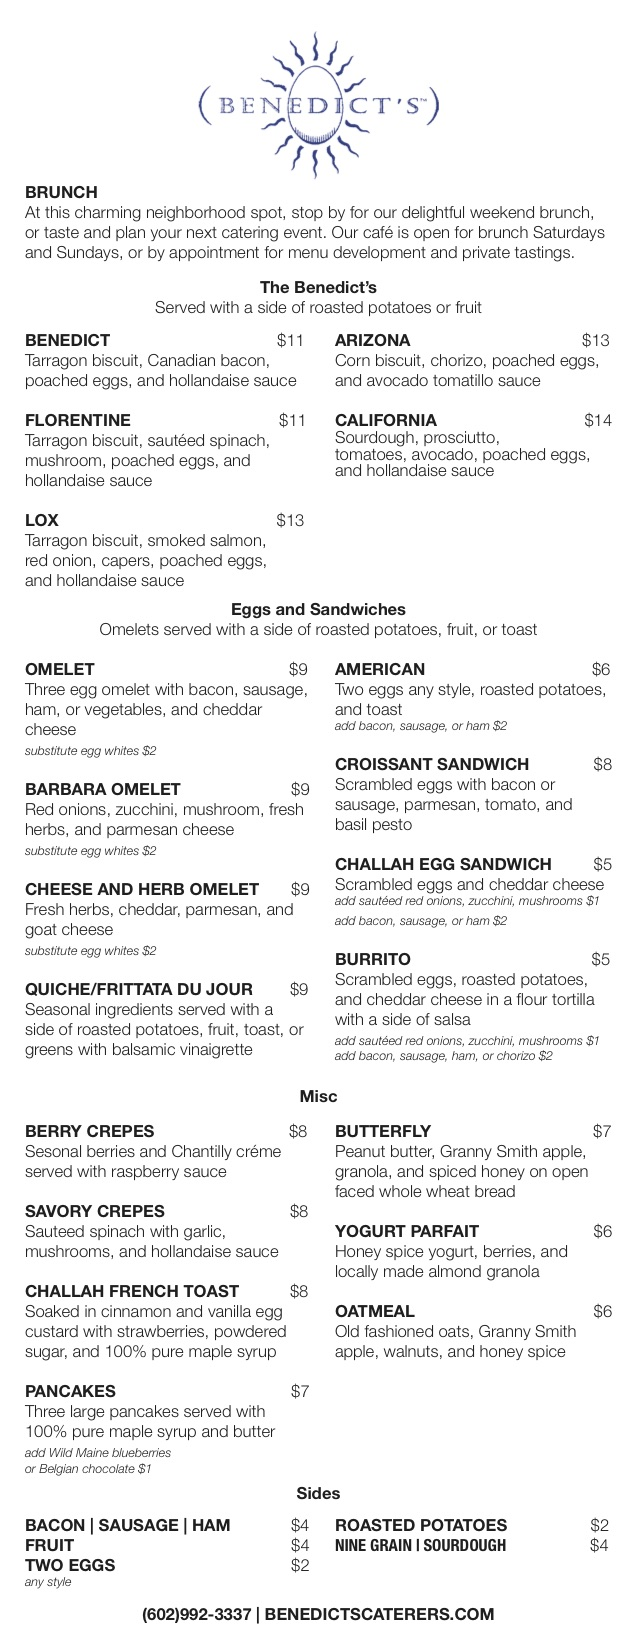 benedicts menu 3.21.15 copy.jpg